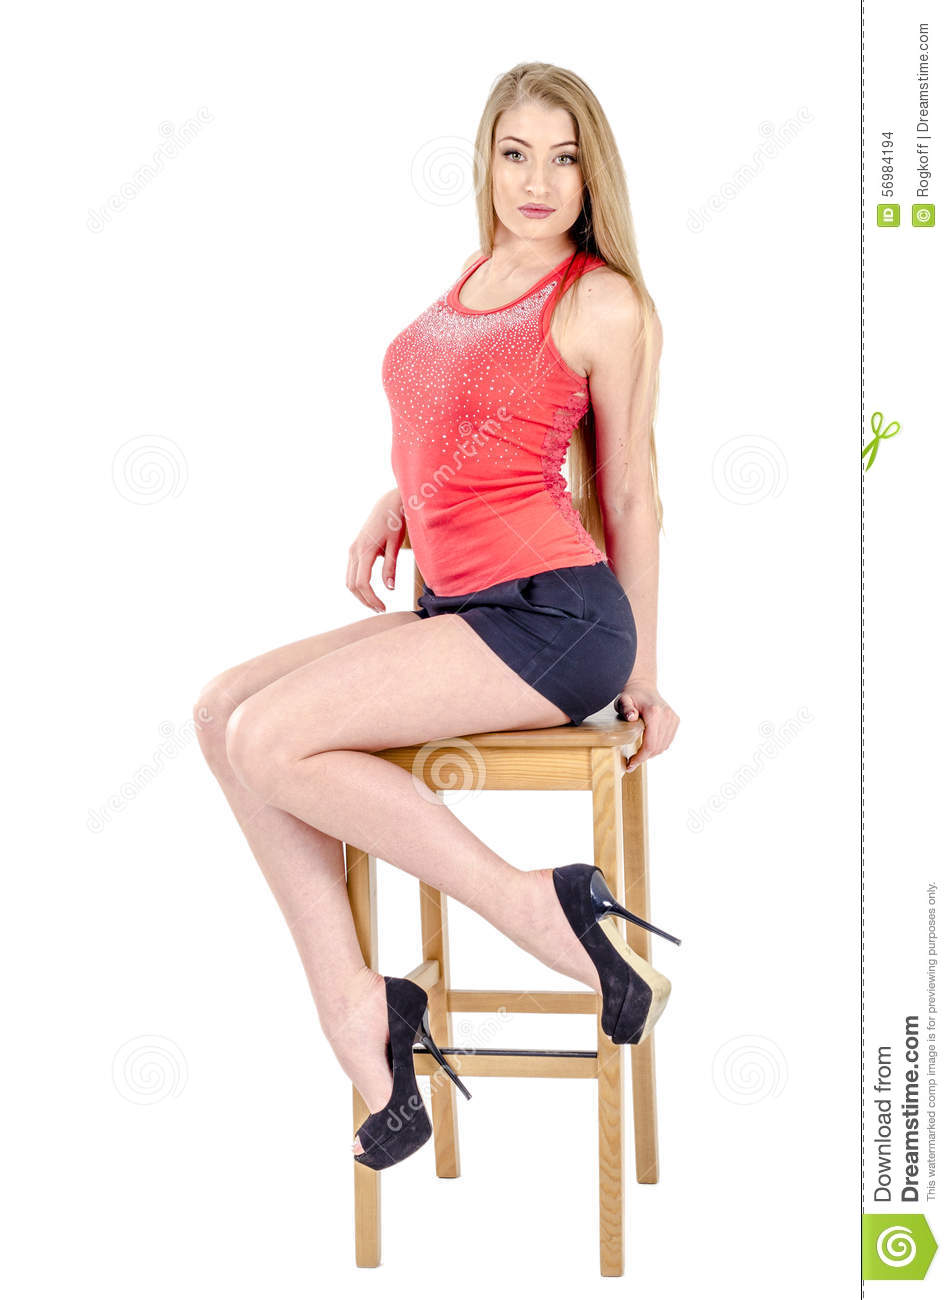 Original Blond Woman In Denim Miniskirt And Striped Shirt Sitting On A Banister